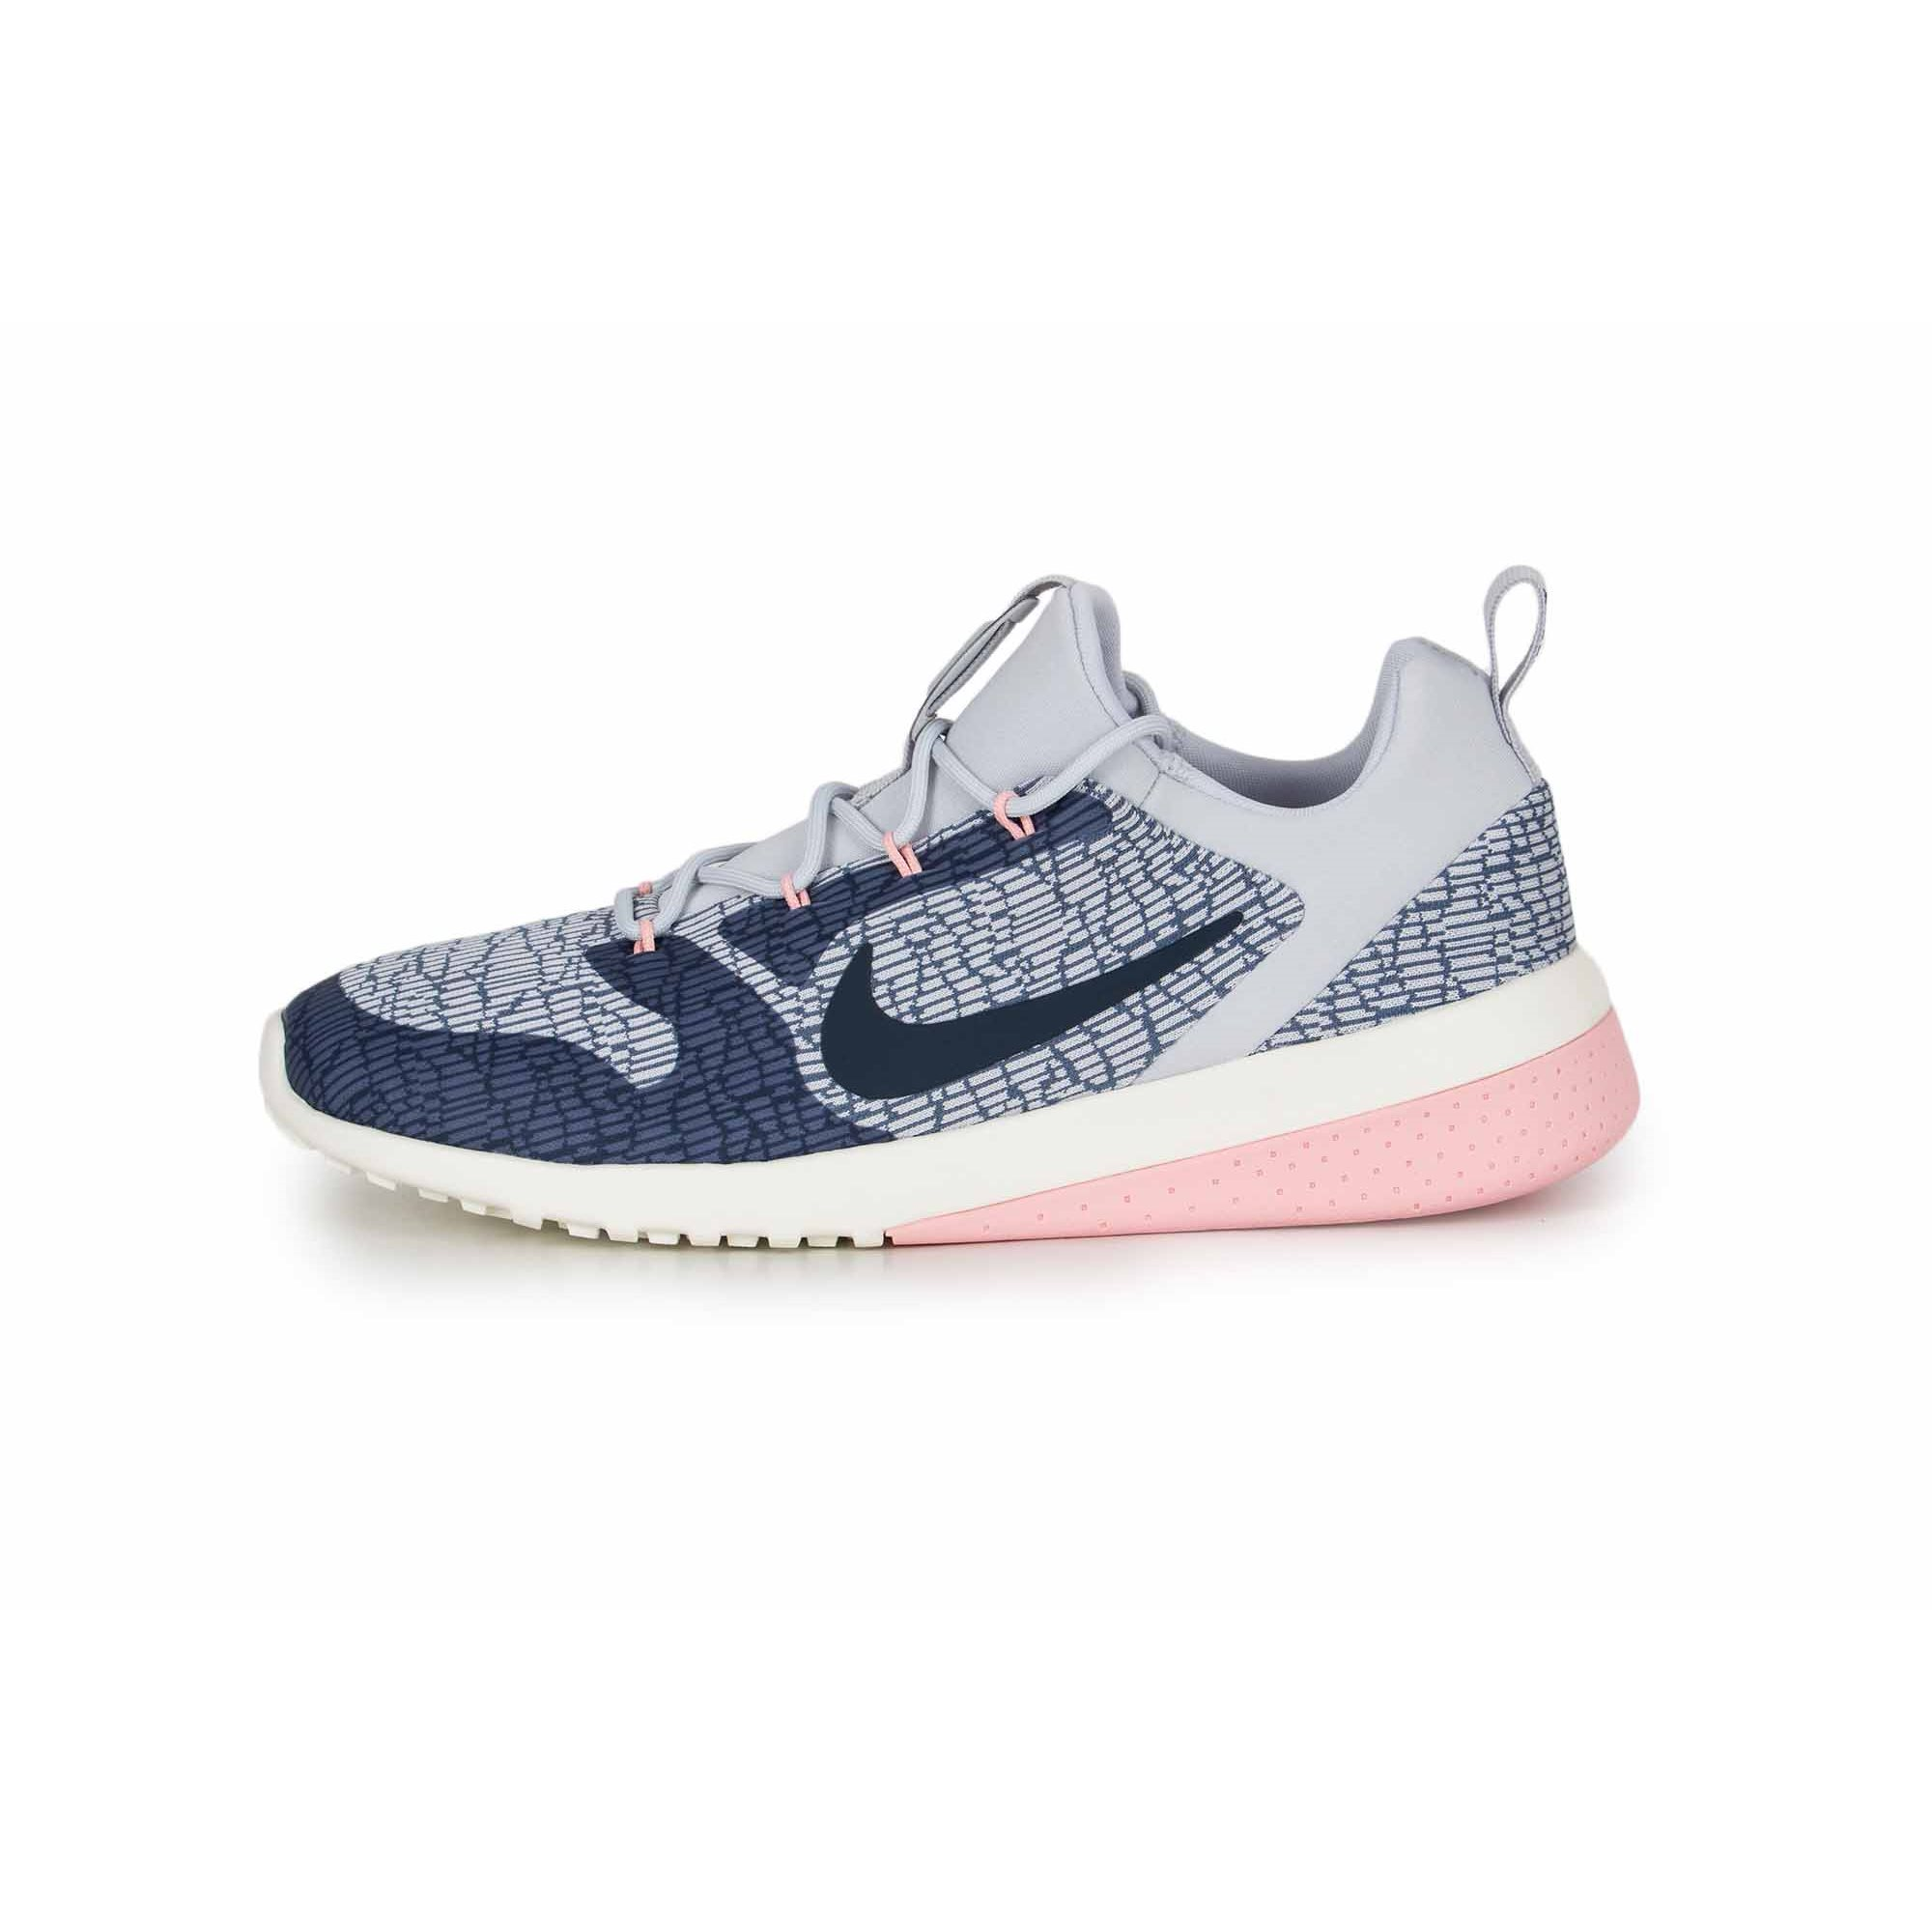 quality design 0a269 e68ca Nike Womens Ck Racer Low Top Lace Up Running Sneaker